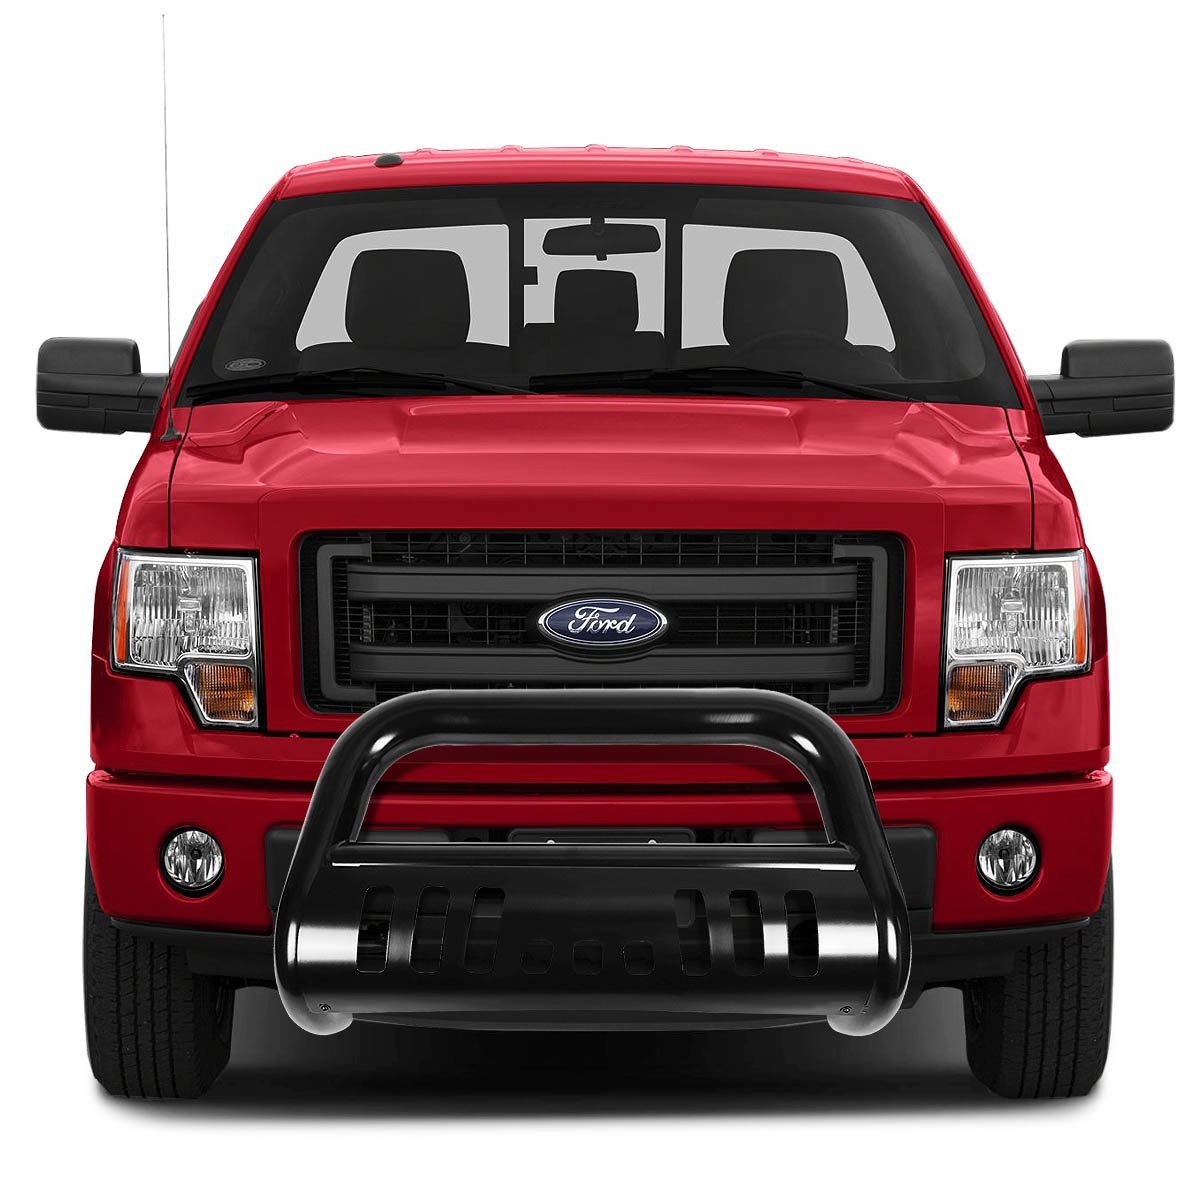 BURB-010-BK DNA Motoring BURB010BK 3 Front Bumper Push Bull Bar For 97-03 Ford F150 F250LD Expedition